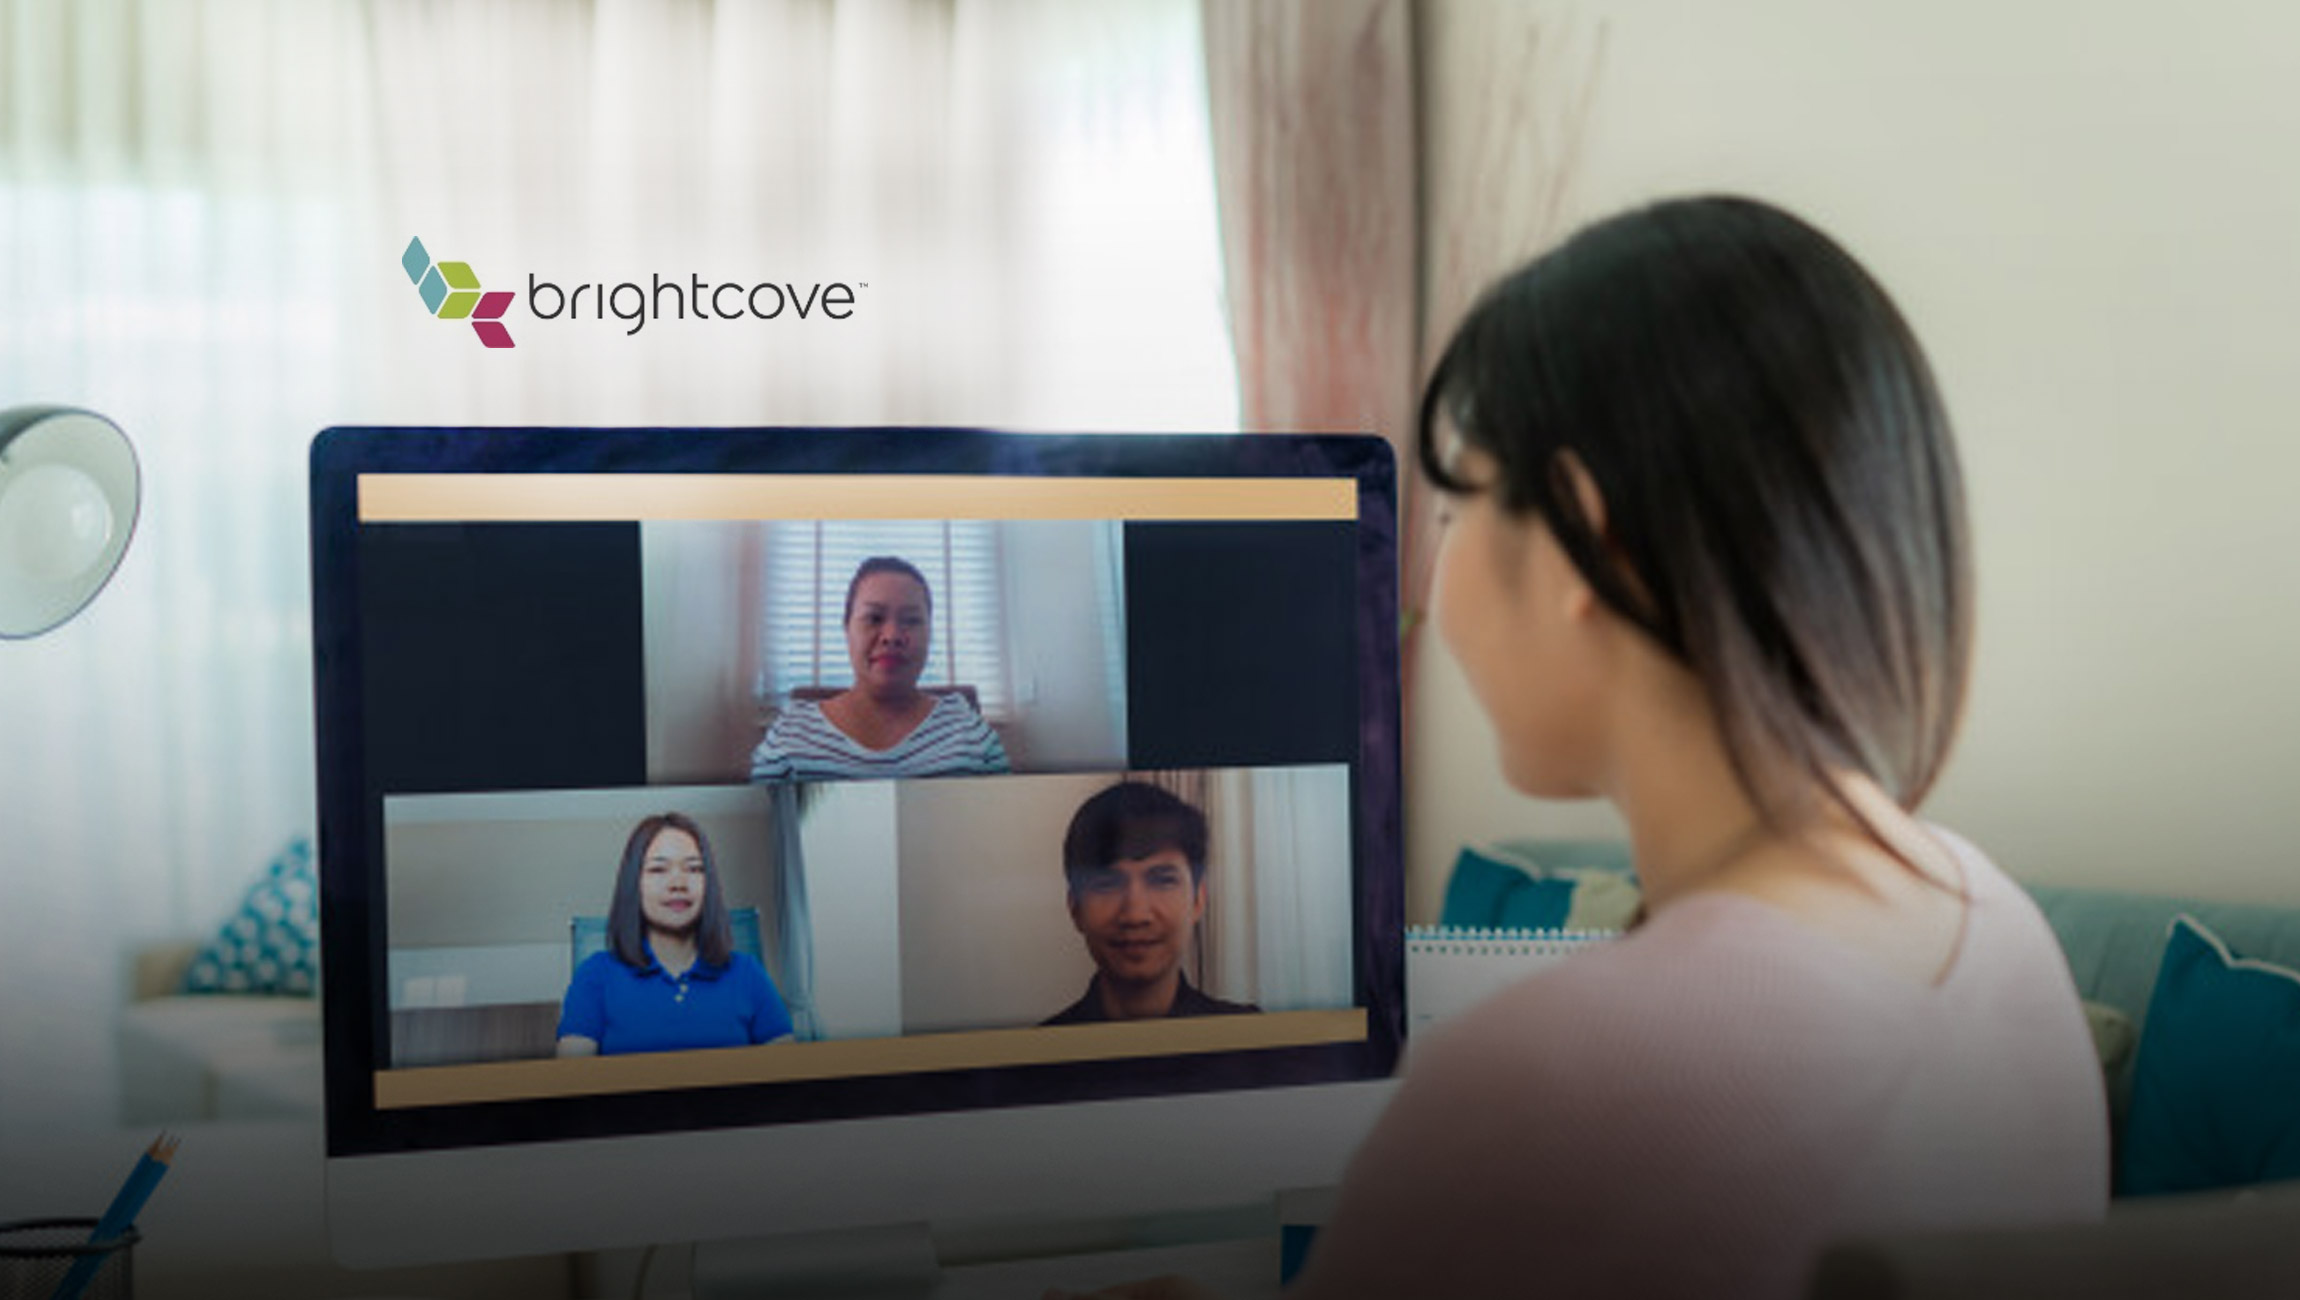 Brightcove Partners with Cvent to Power the Future of Virtual Events